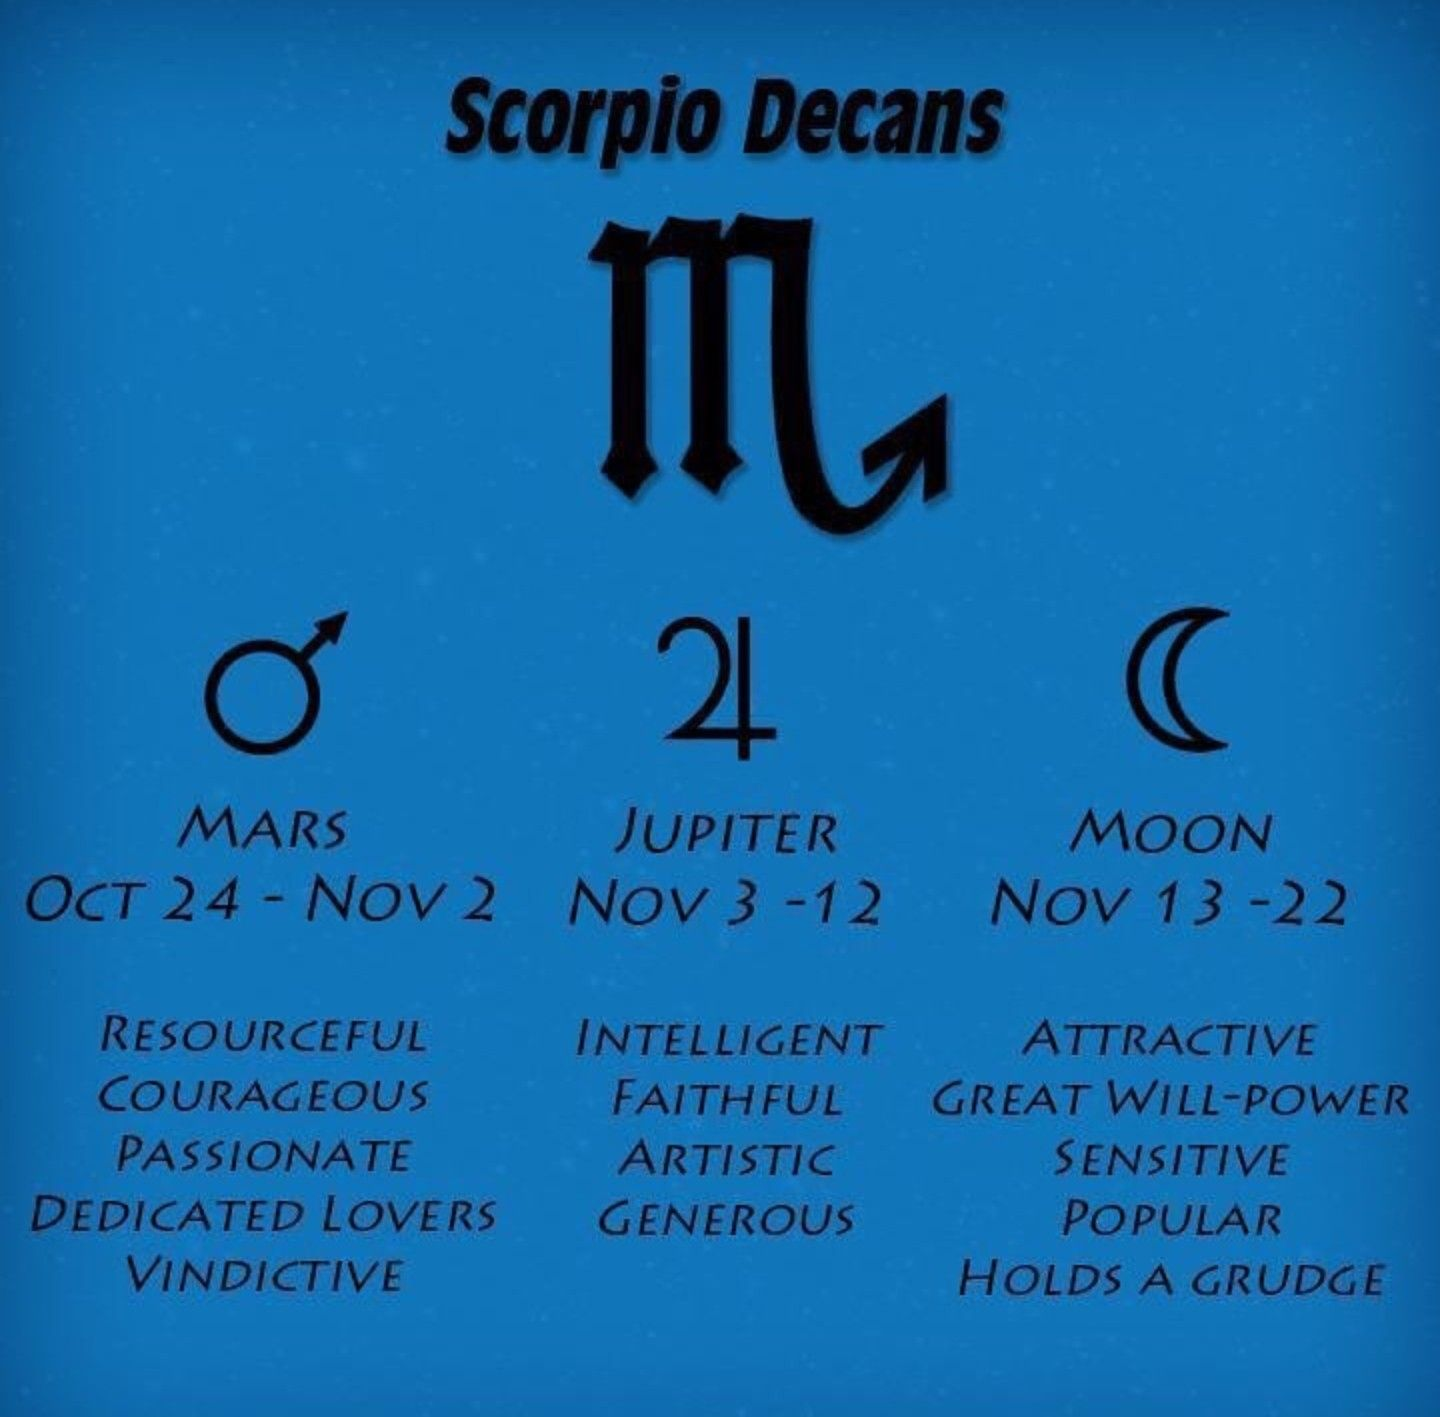 what astrological sign is november 14